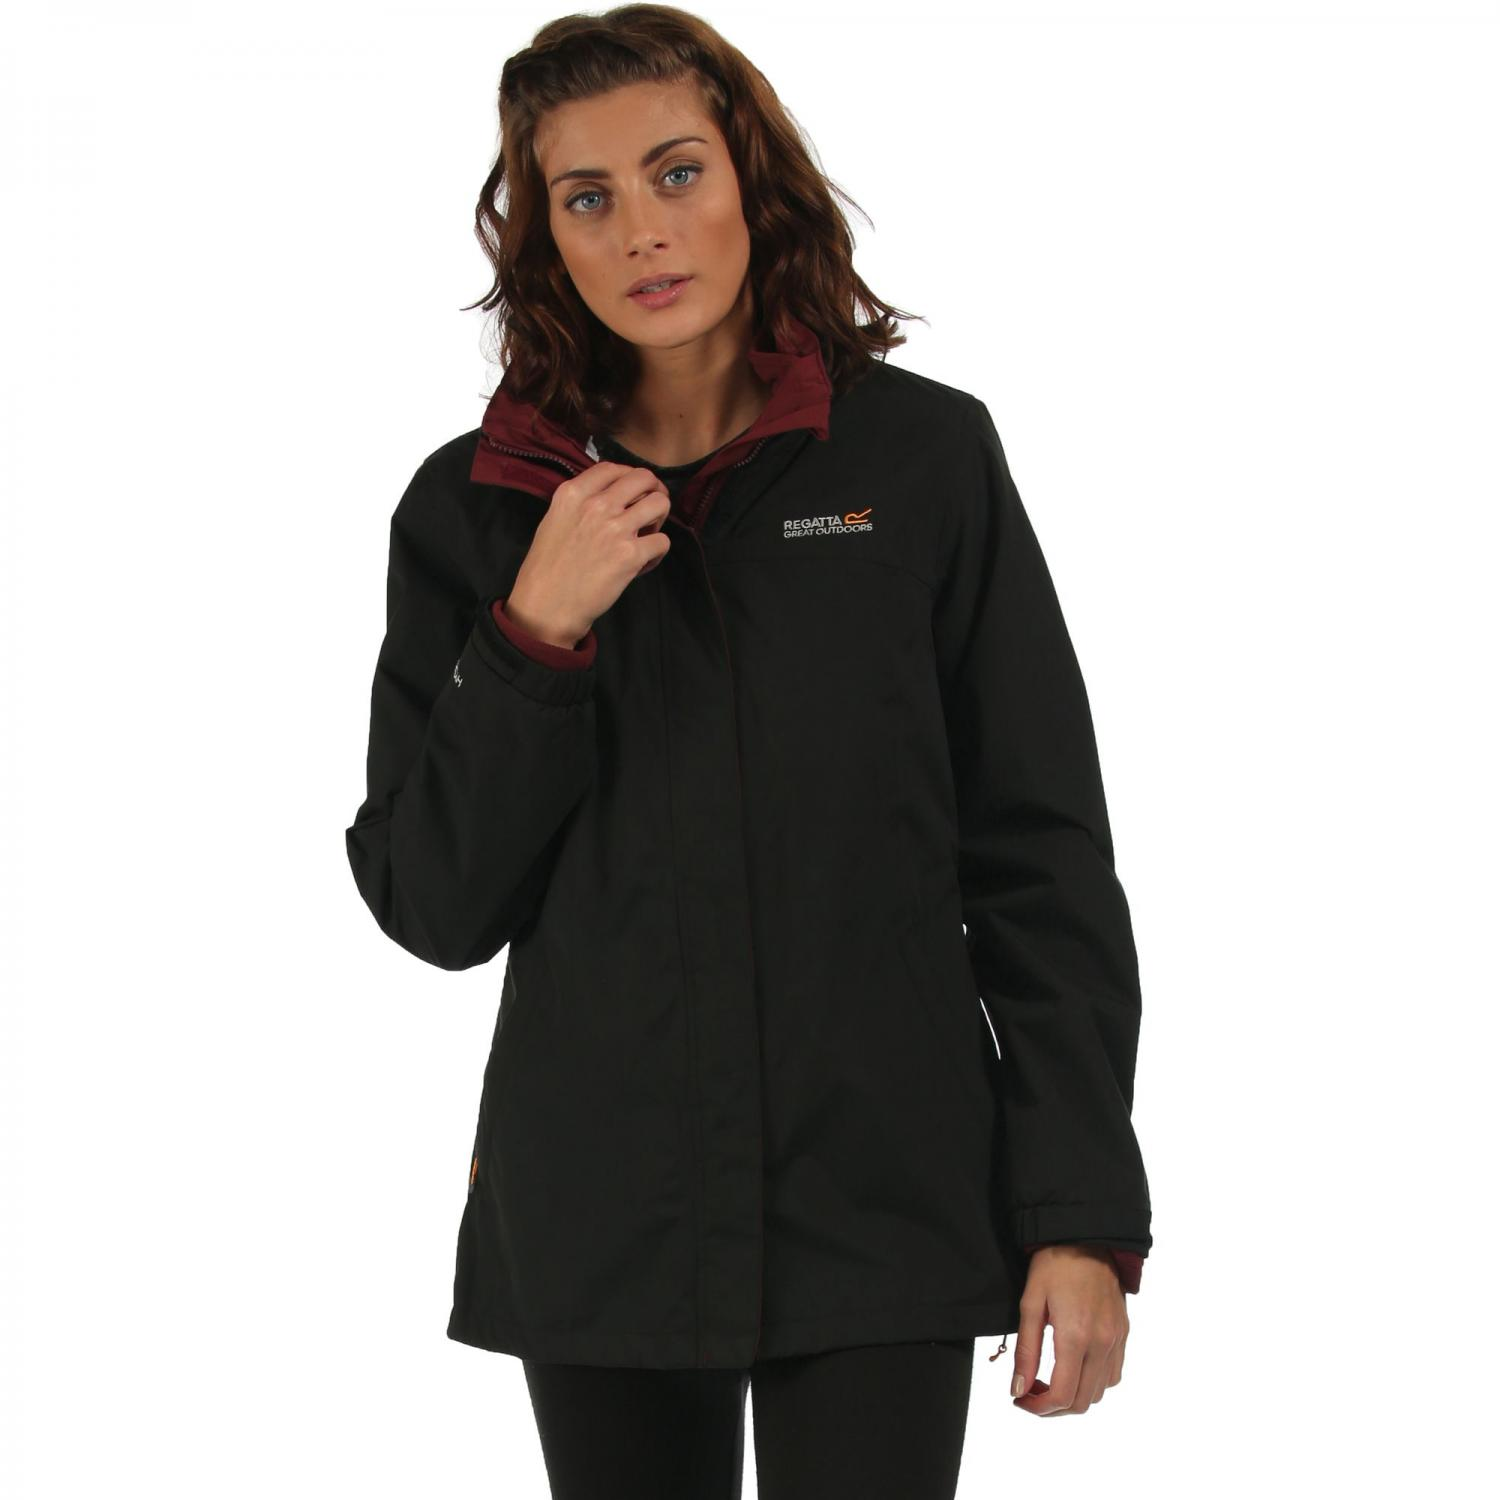 Preya III 3 in 1 Jacket Black Mulberry